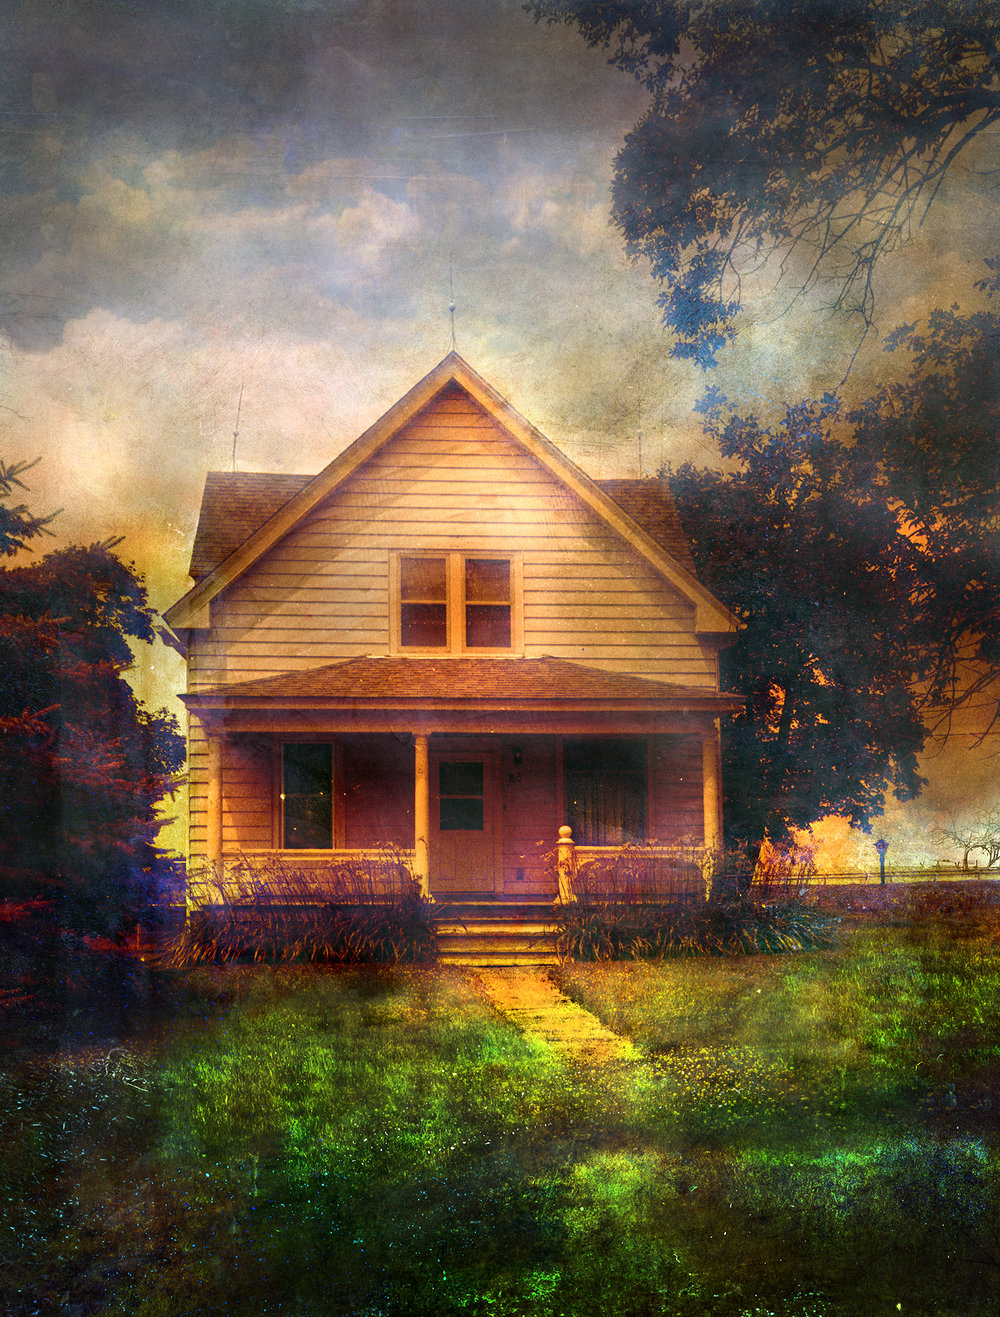 Iowa House In Morning Light, 65 x 48